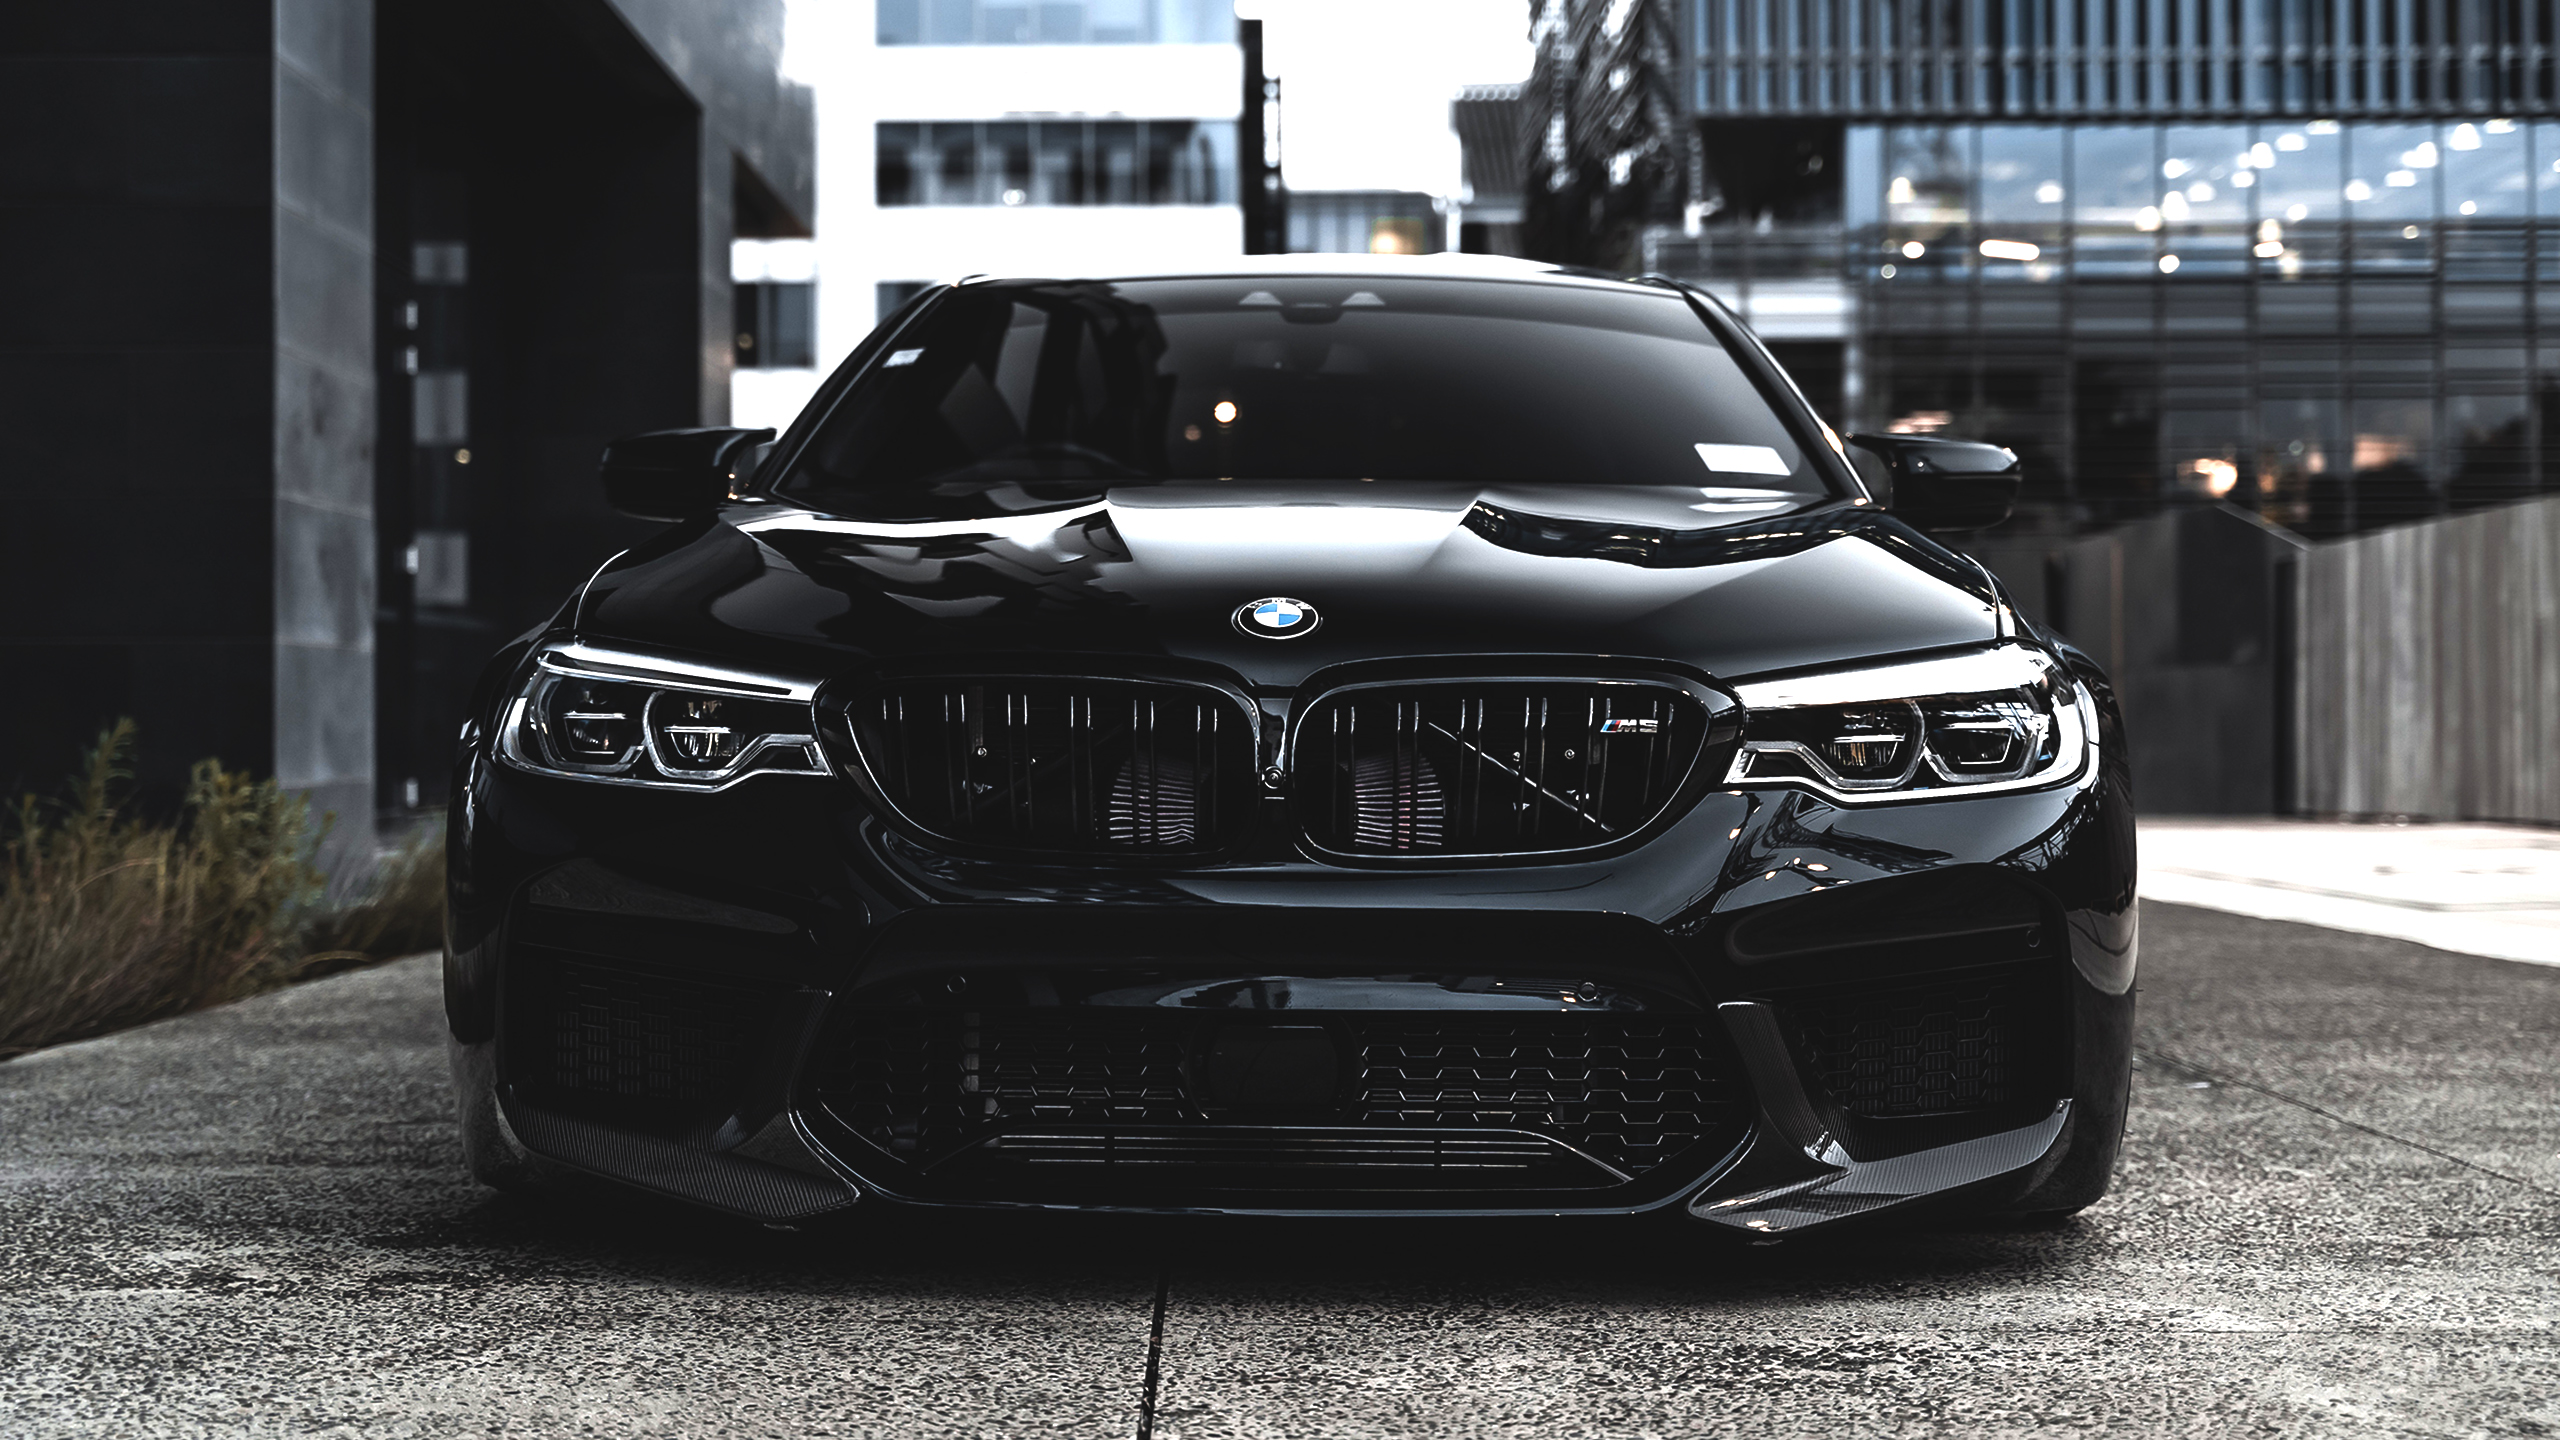 BMW M5 Wallpapers HD Wallpapers 2560x1440